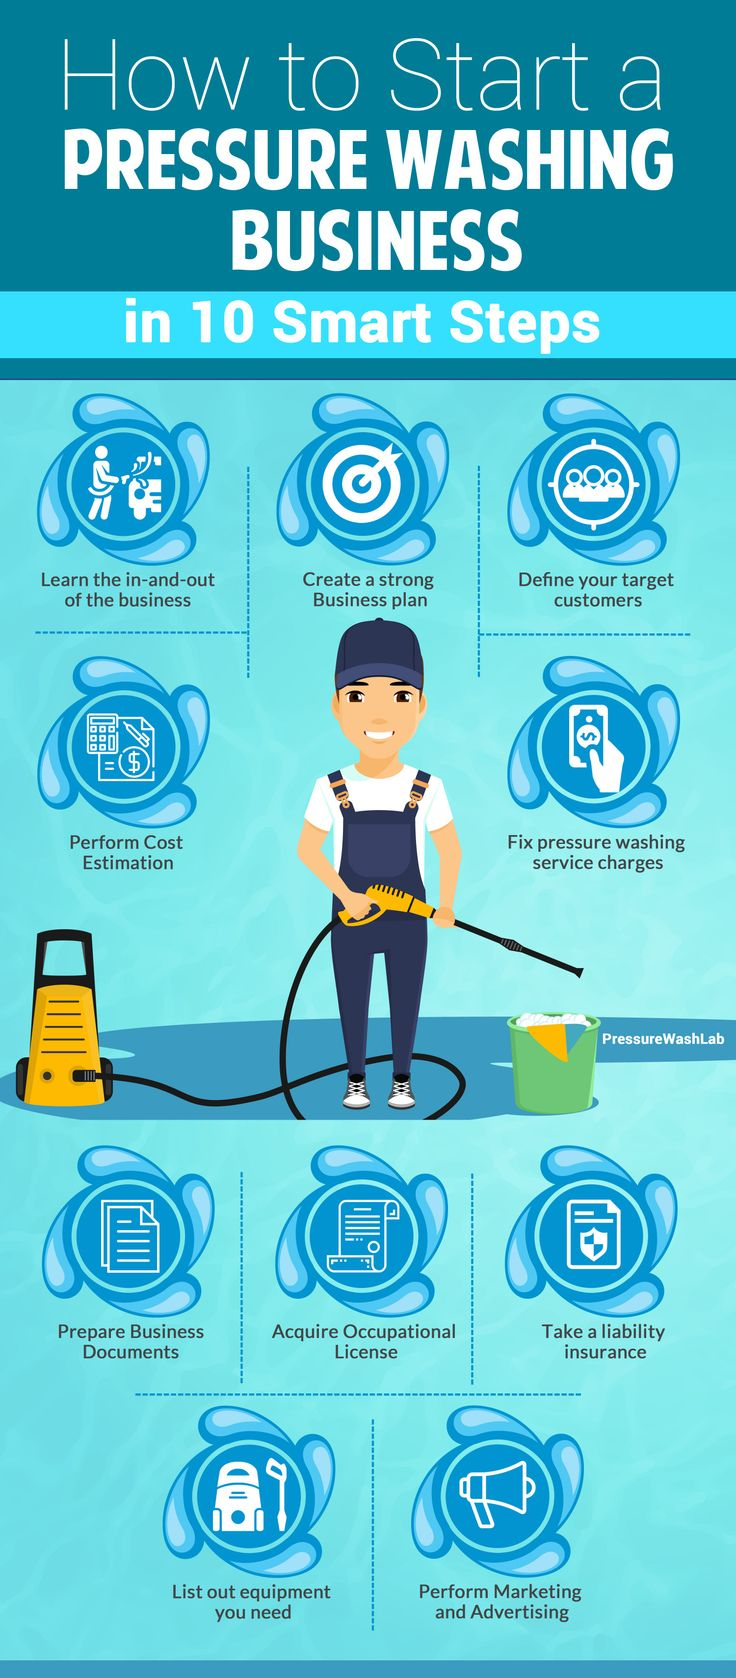 How to start pressure washing business in 10 Steps